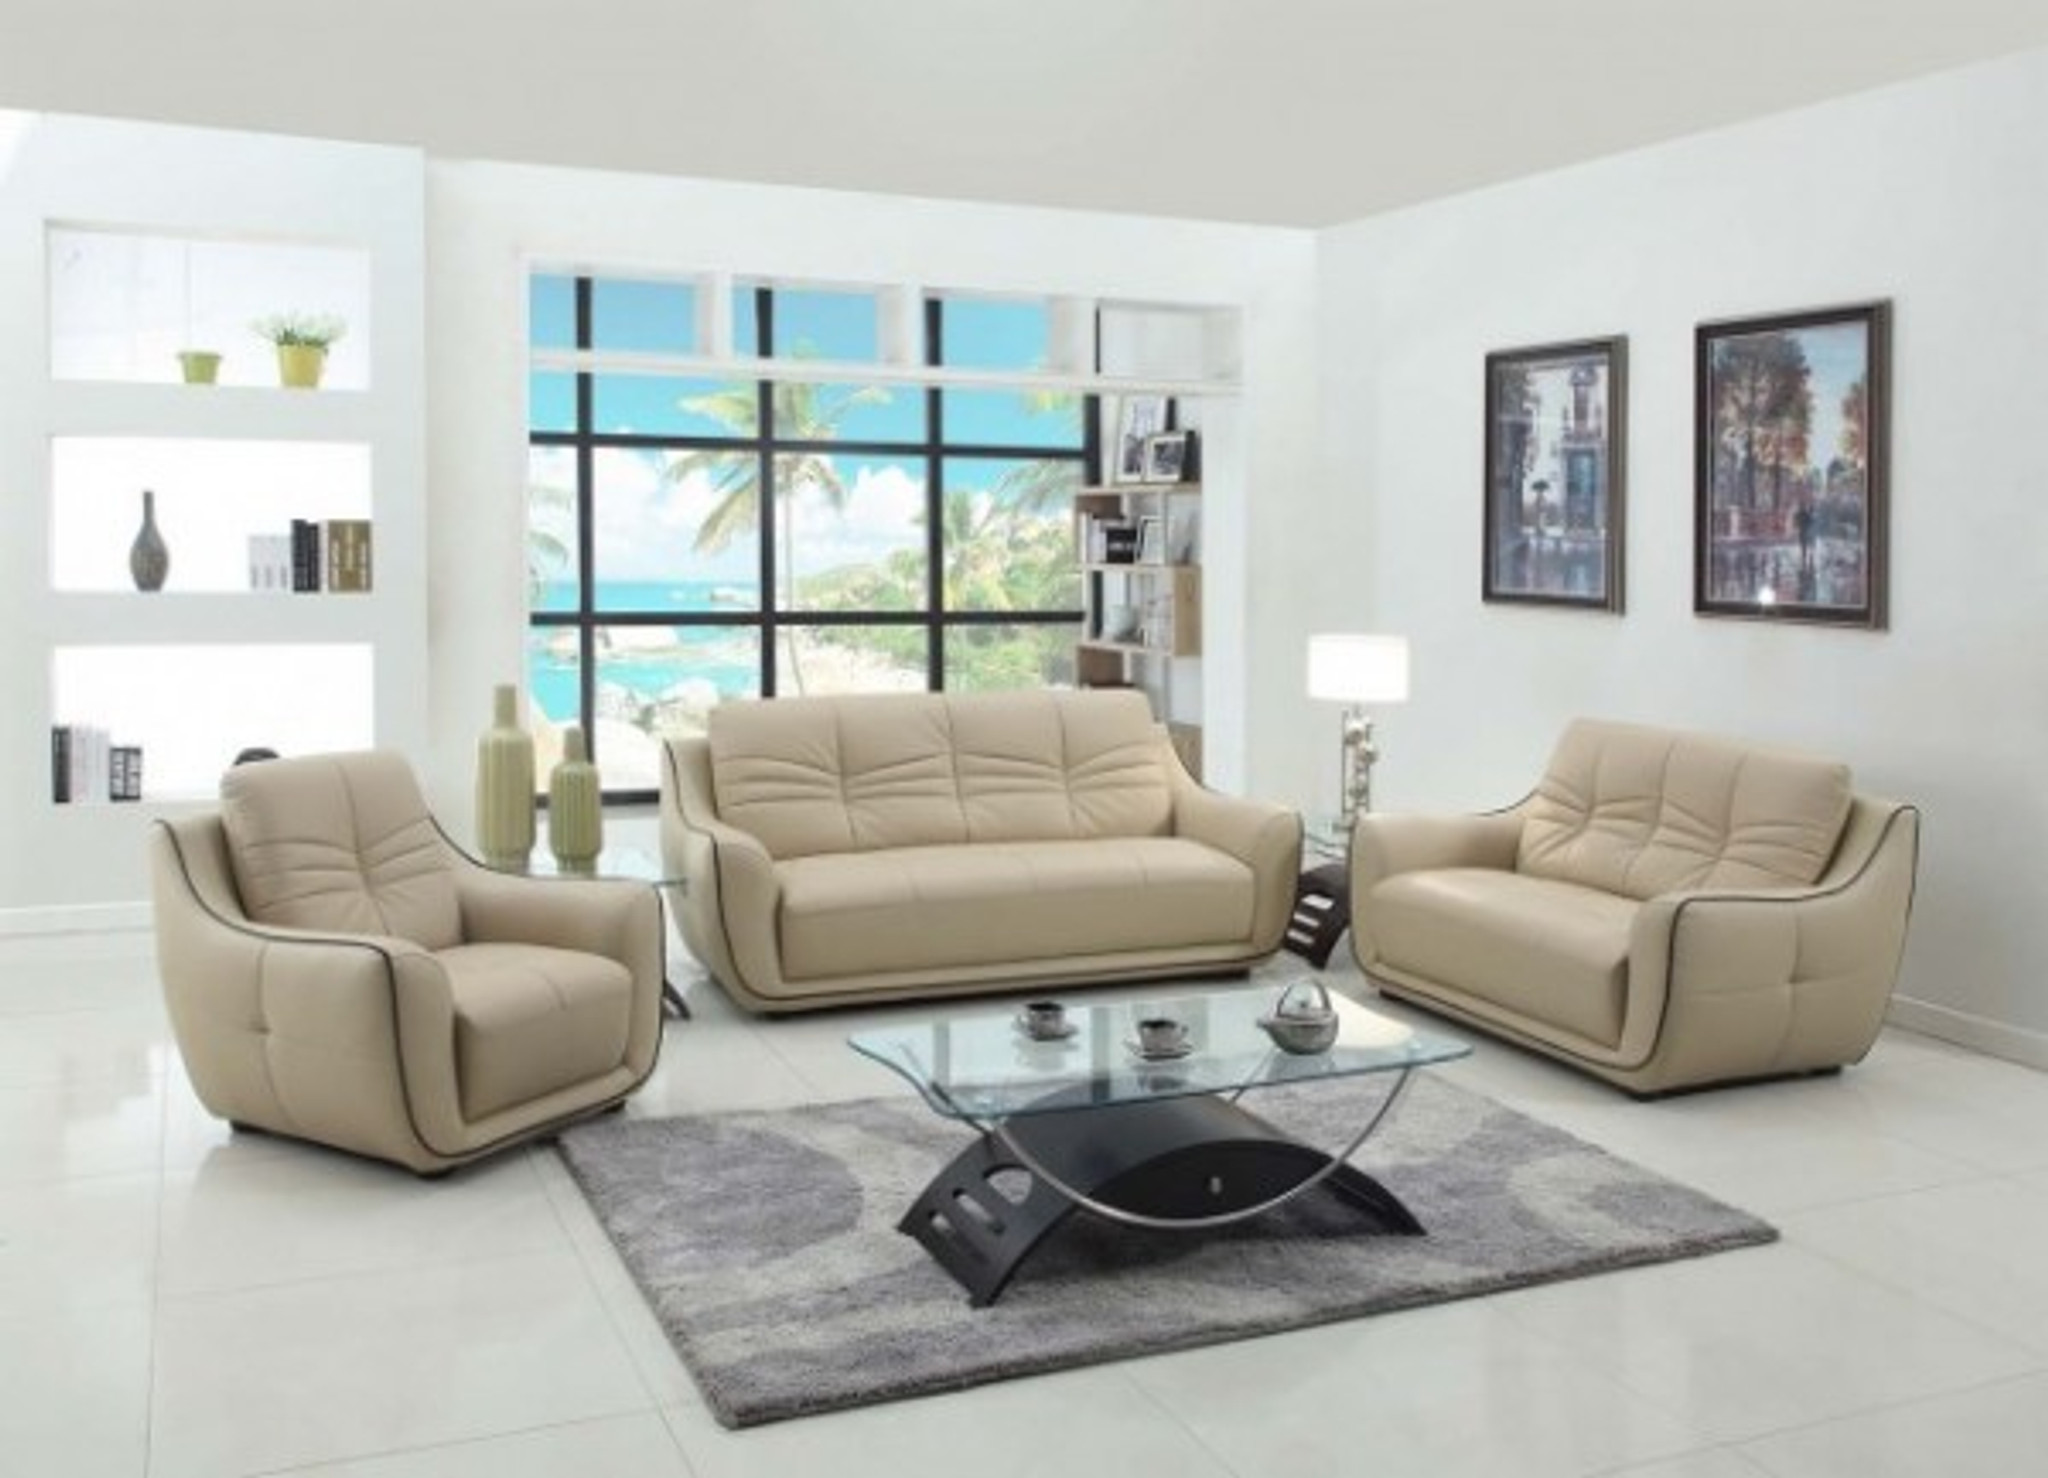 Terrific Tatya Leather Sofa And Loveseat In Beige Squirreltailoven Fun Painted Chair Ideas Images Squirreltailovenorg